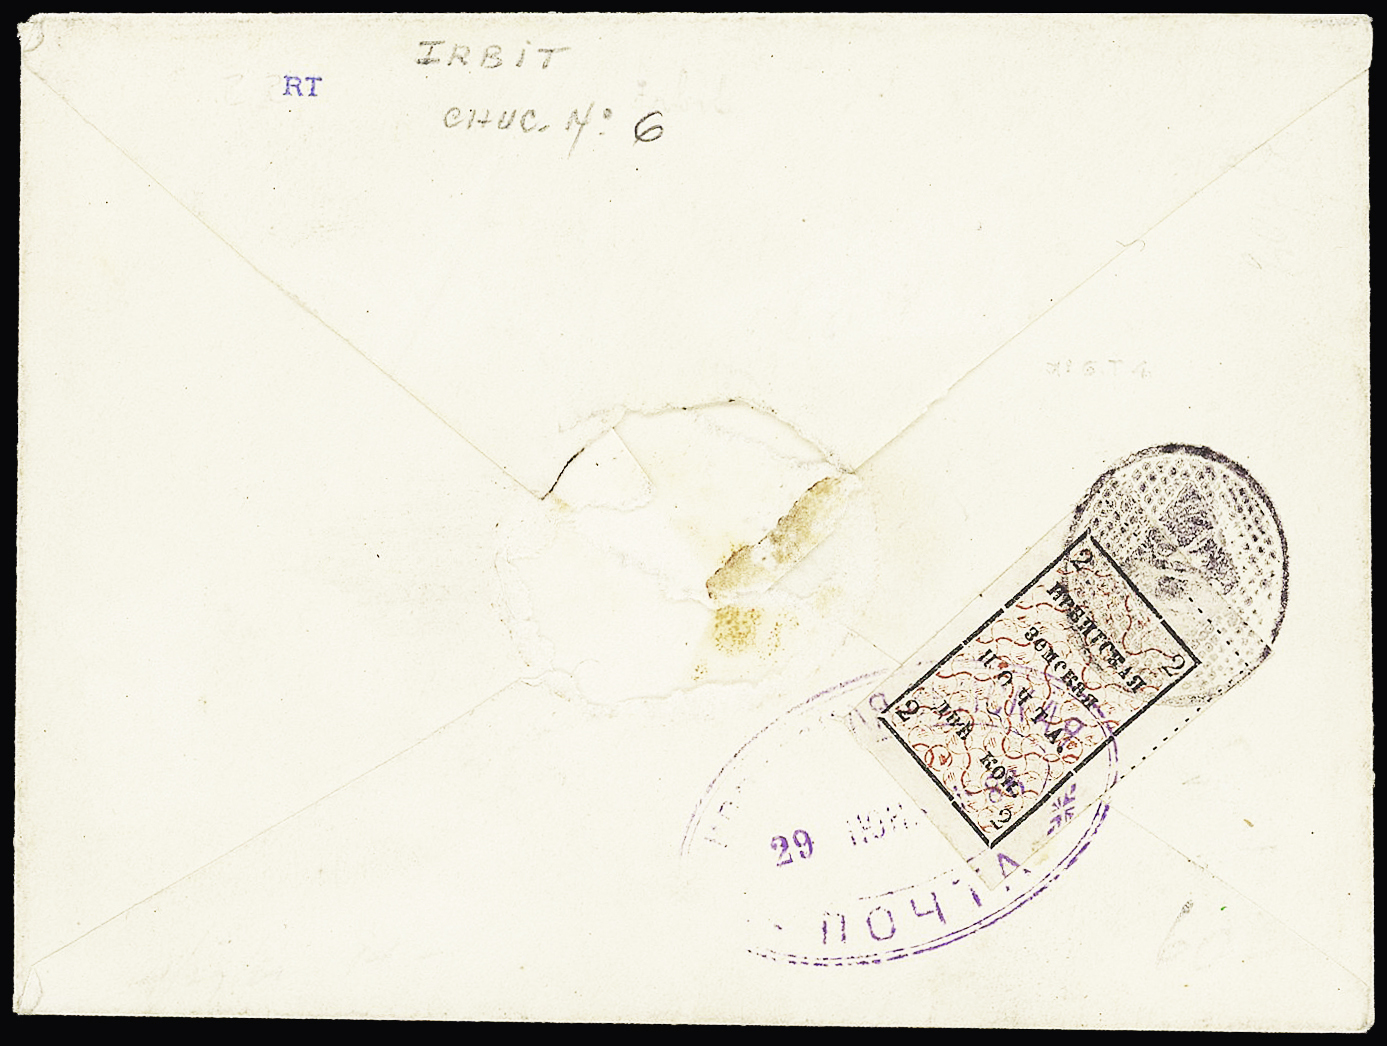 Lot 459 - Eastern Europe » RUSSIA - ZEMSTVOS » Irbit (Perm Government)  -  Le Timbre Classique SA SALE ON OFFERS N ° 37 PARIS